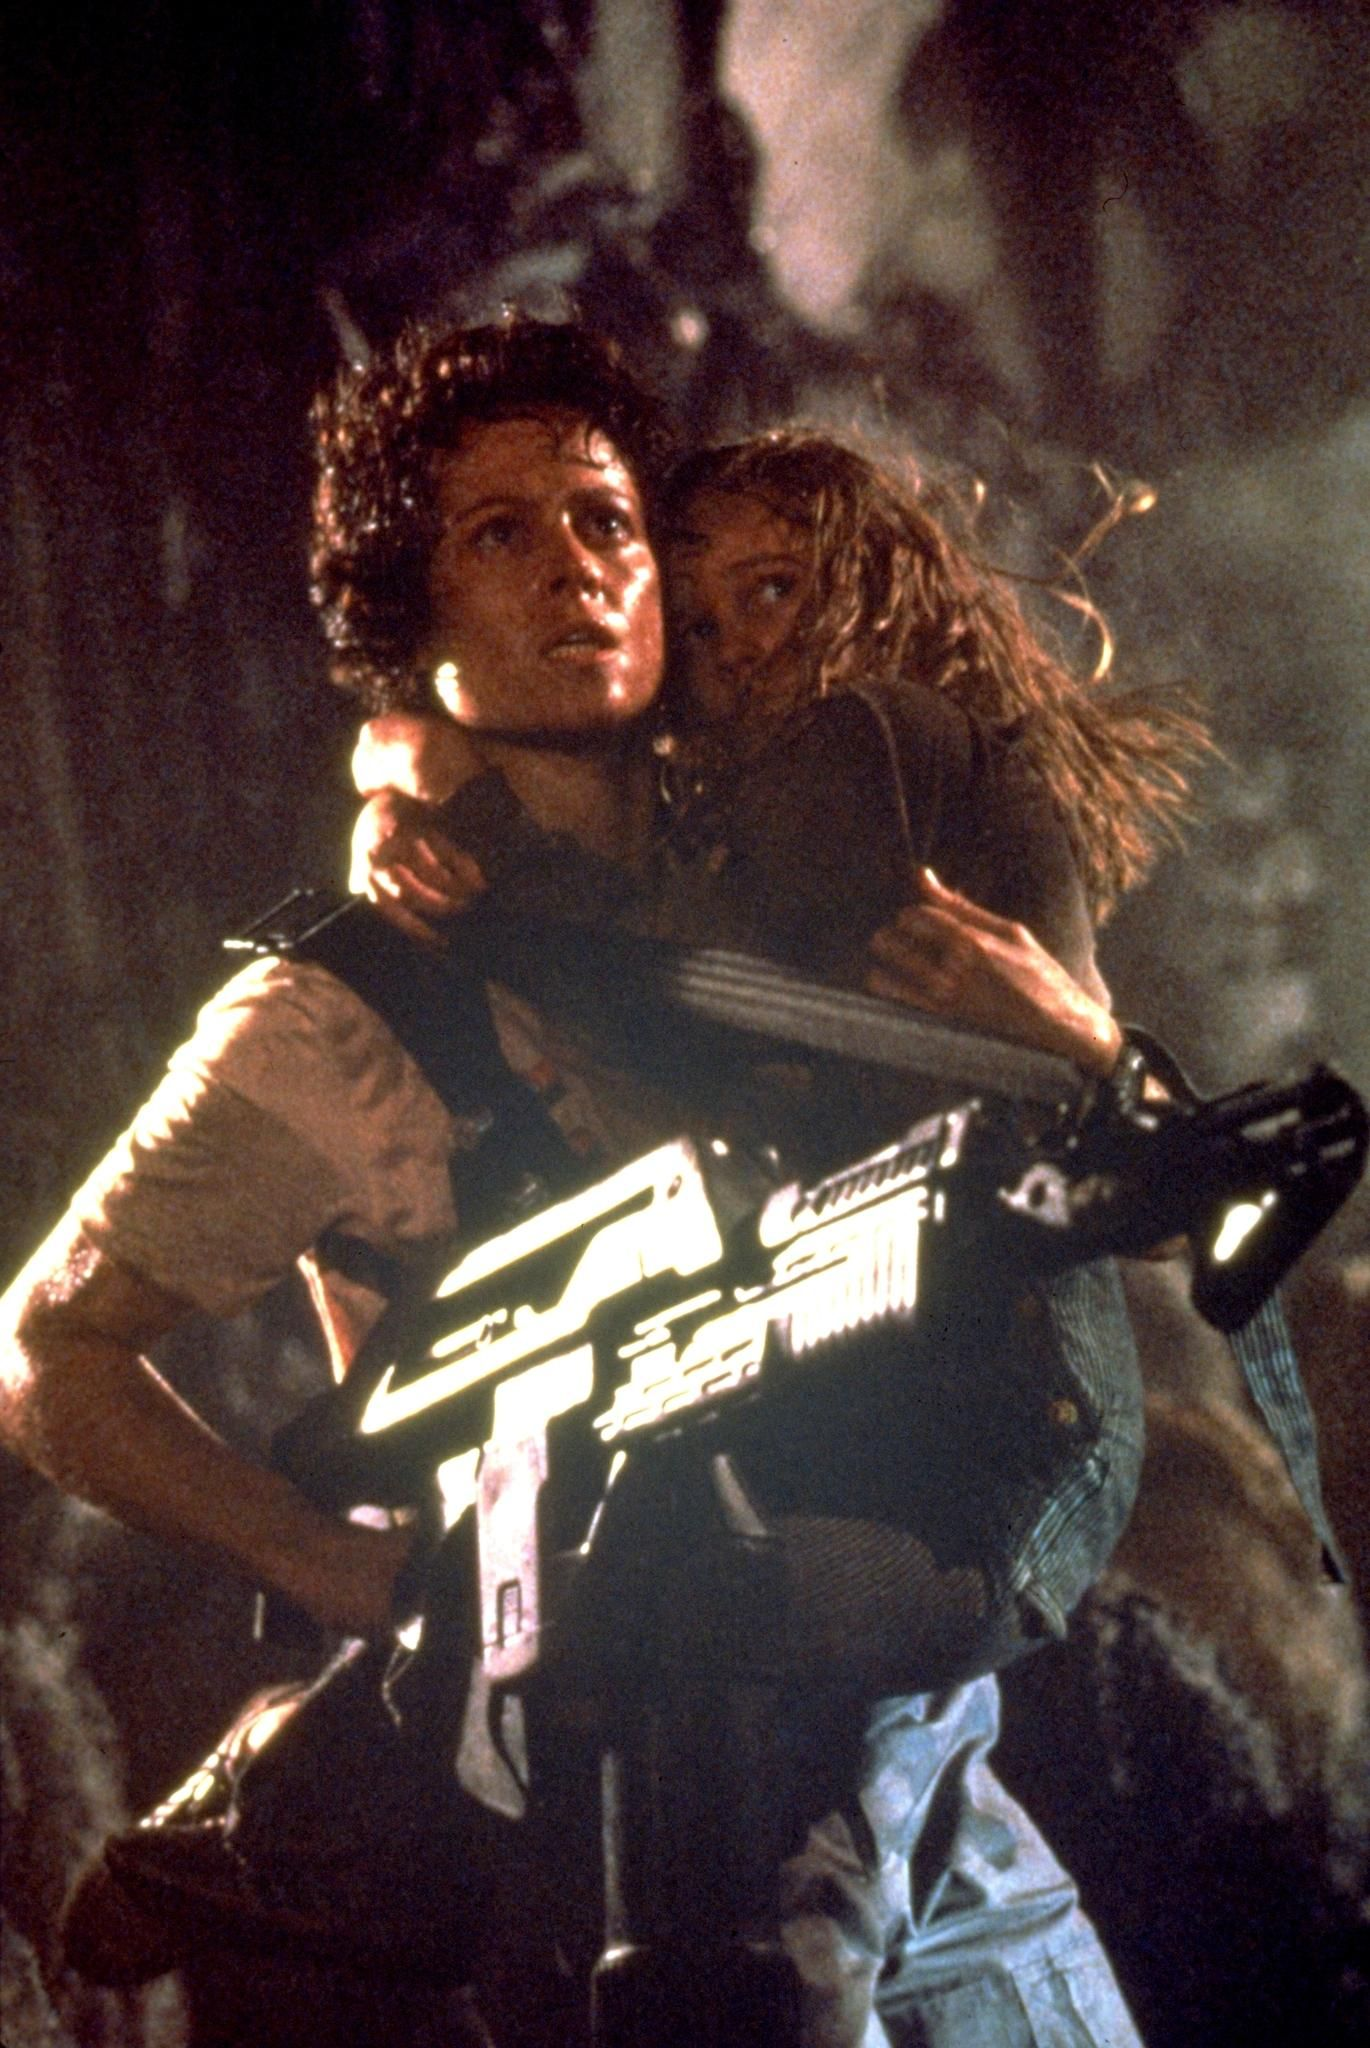 Still of Sigourney Weaver and Carrie Henn in Aliens - Återkomsten (1986) http://www.movpins.com/dHQwMDkwNjA1/aliens-(1986)/still-270634752